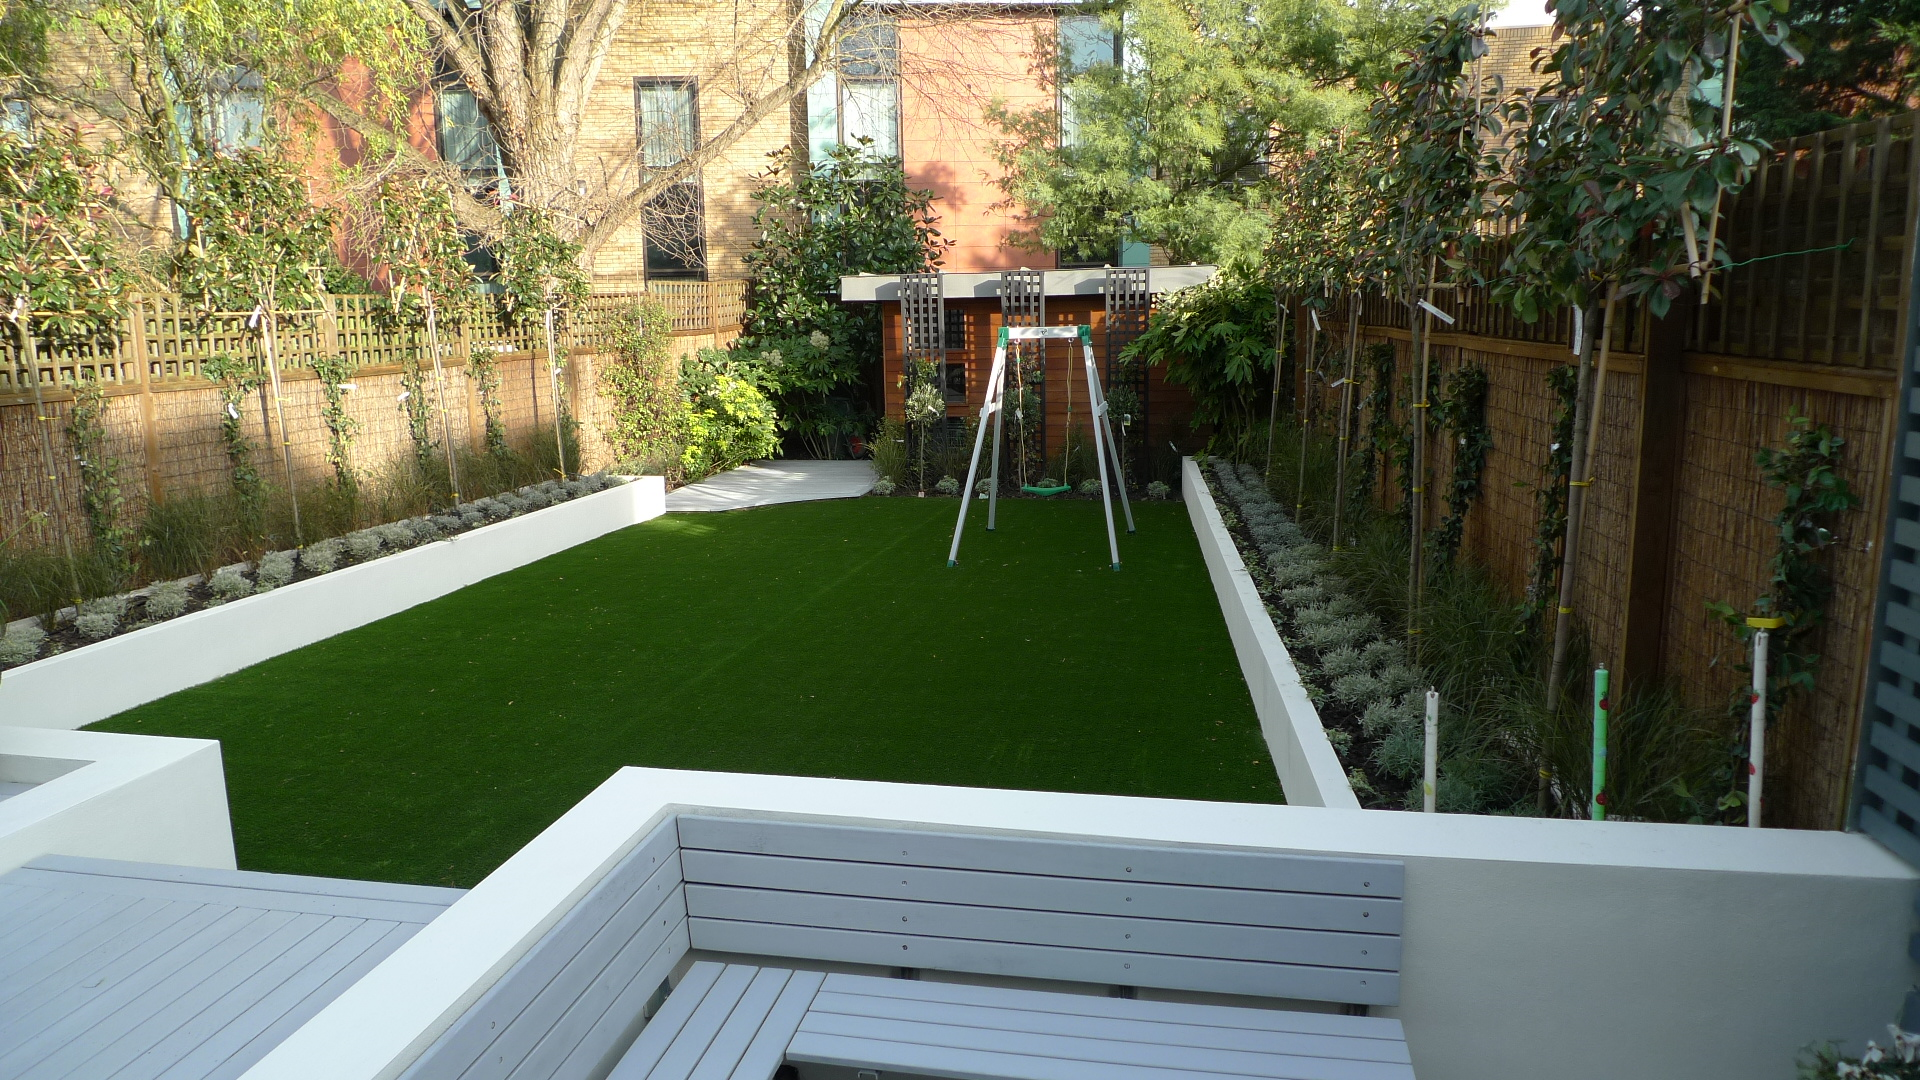 Modern garden design ideas london london garden design for Design my garden ideas